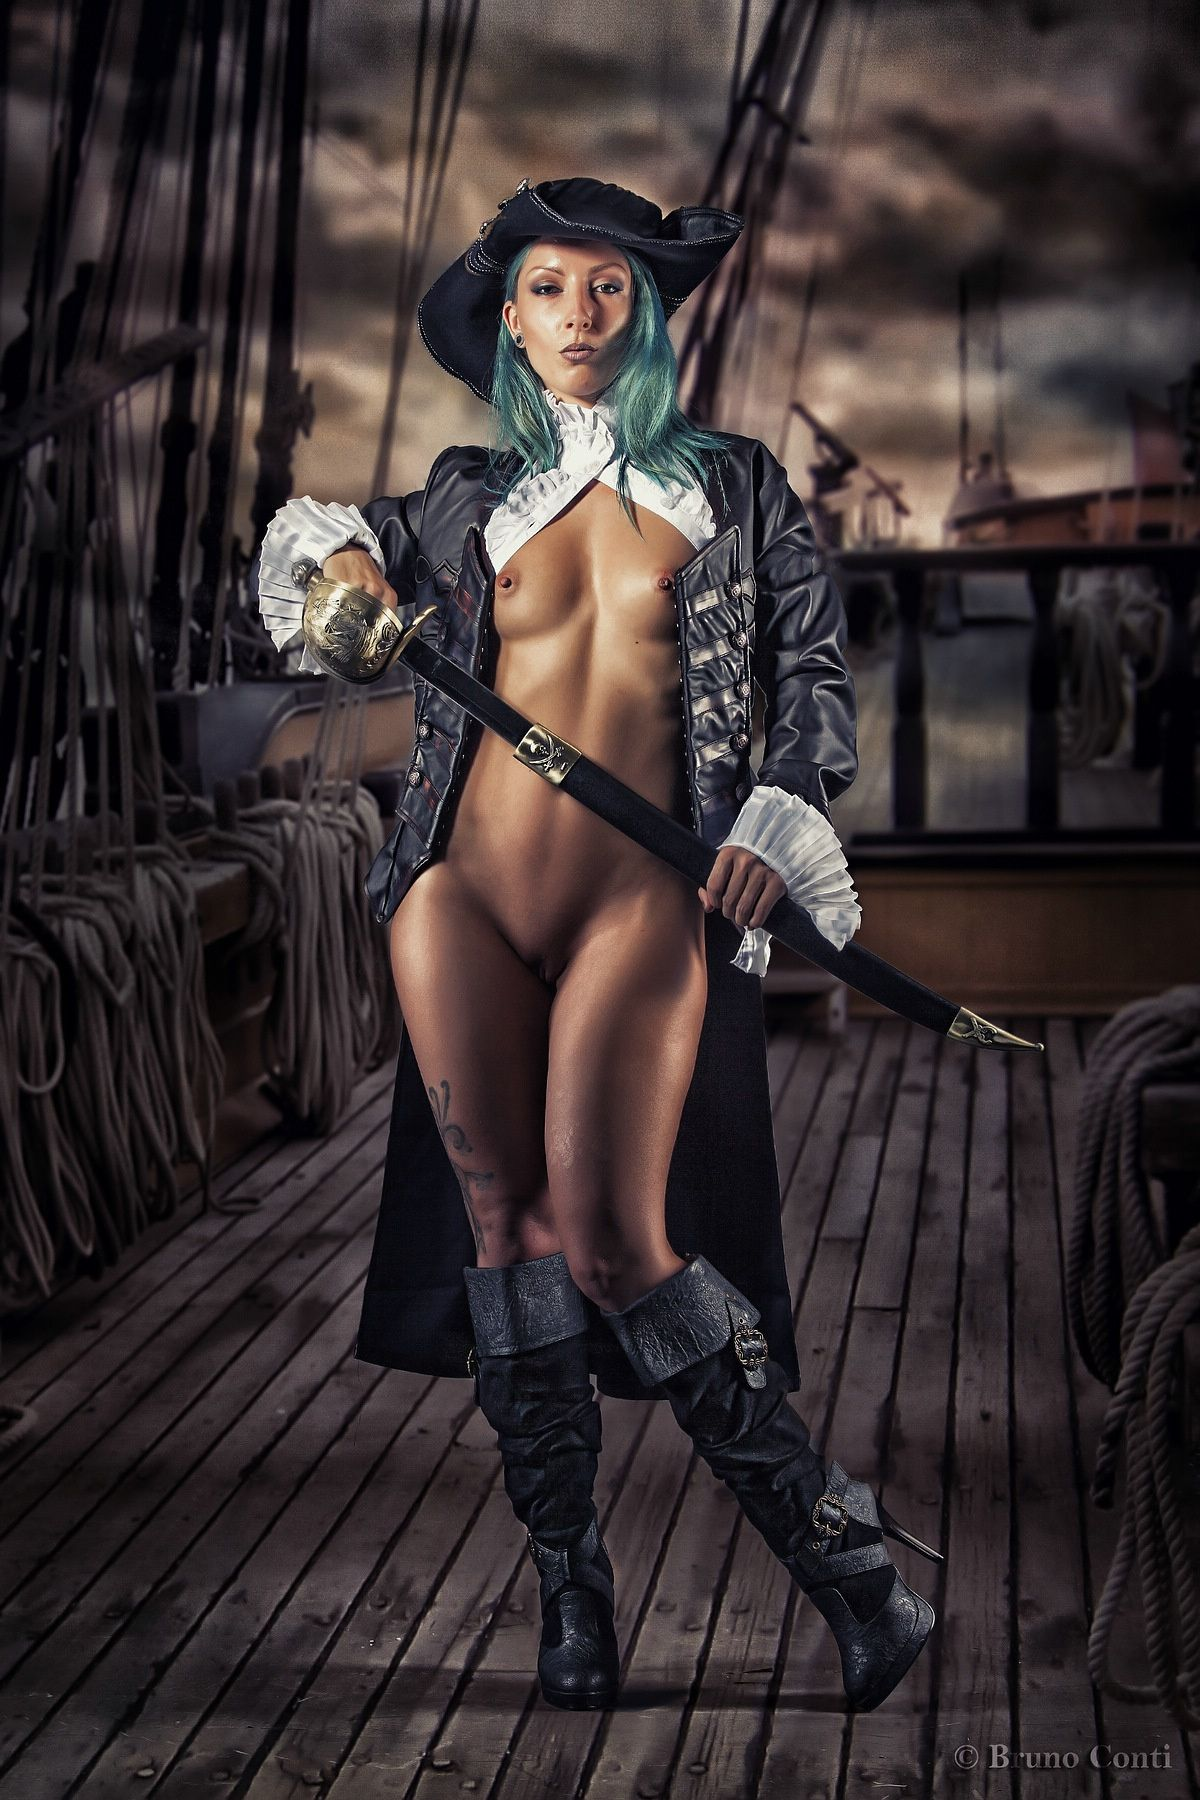 Naked pirate pictures